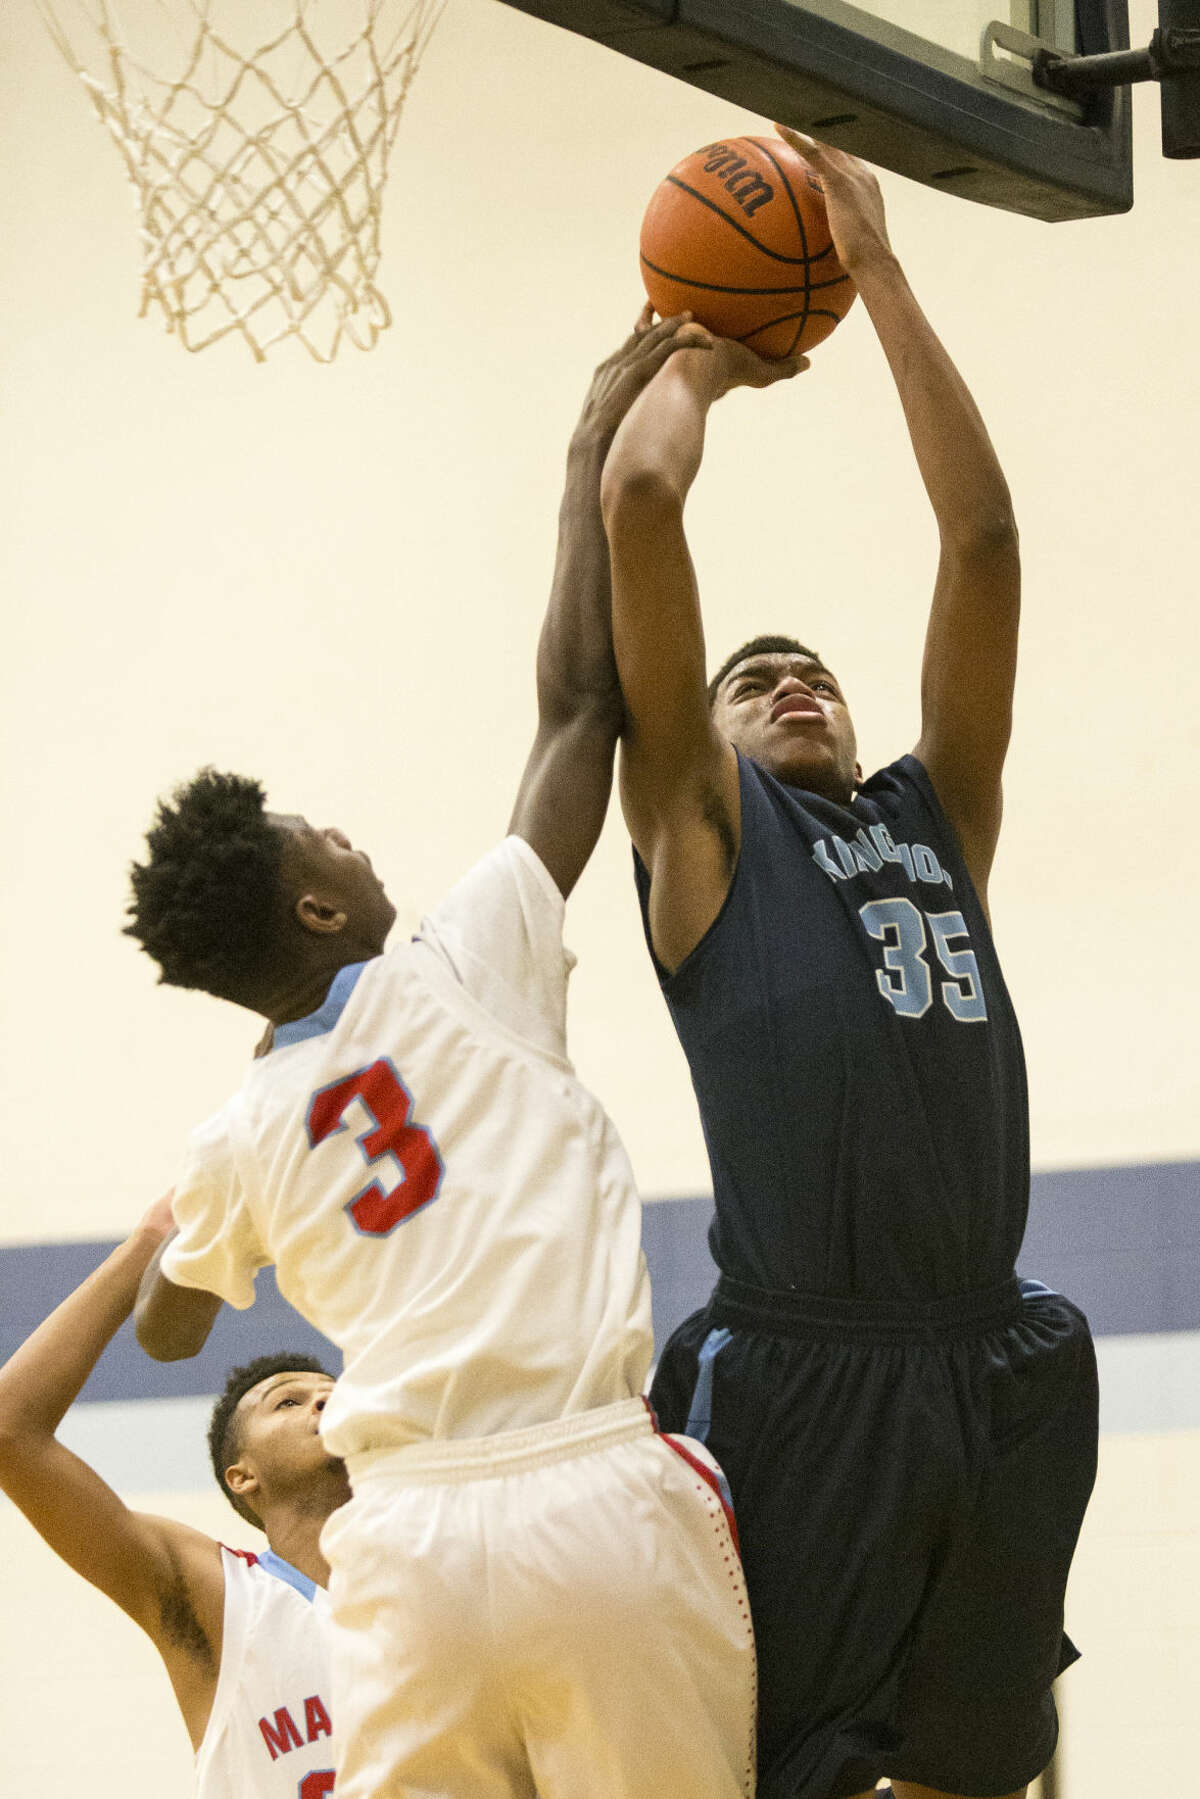 Kingwood's Fabian White (35) shoots a under the basket during their consolation matchup against Houston Madison in The Insperity Holiday Classic on Dec. 30, 2014, at Kingwood High School.